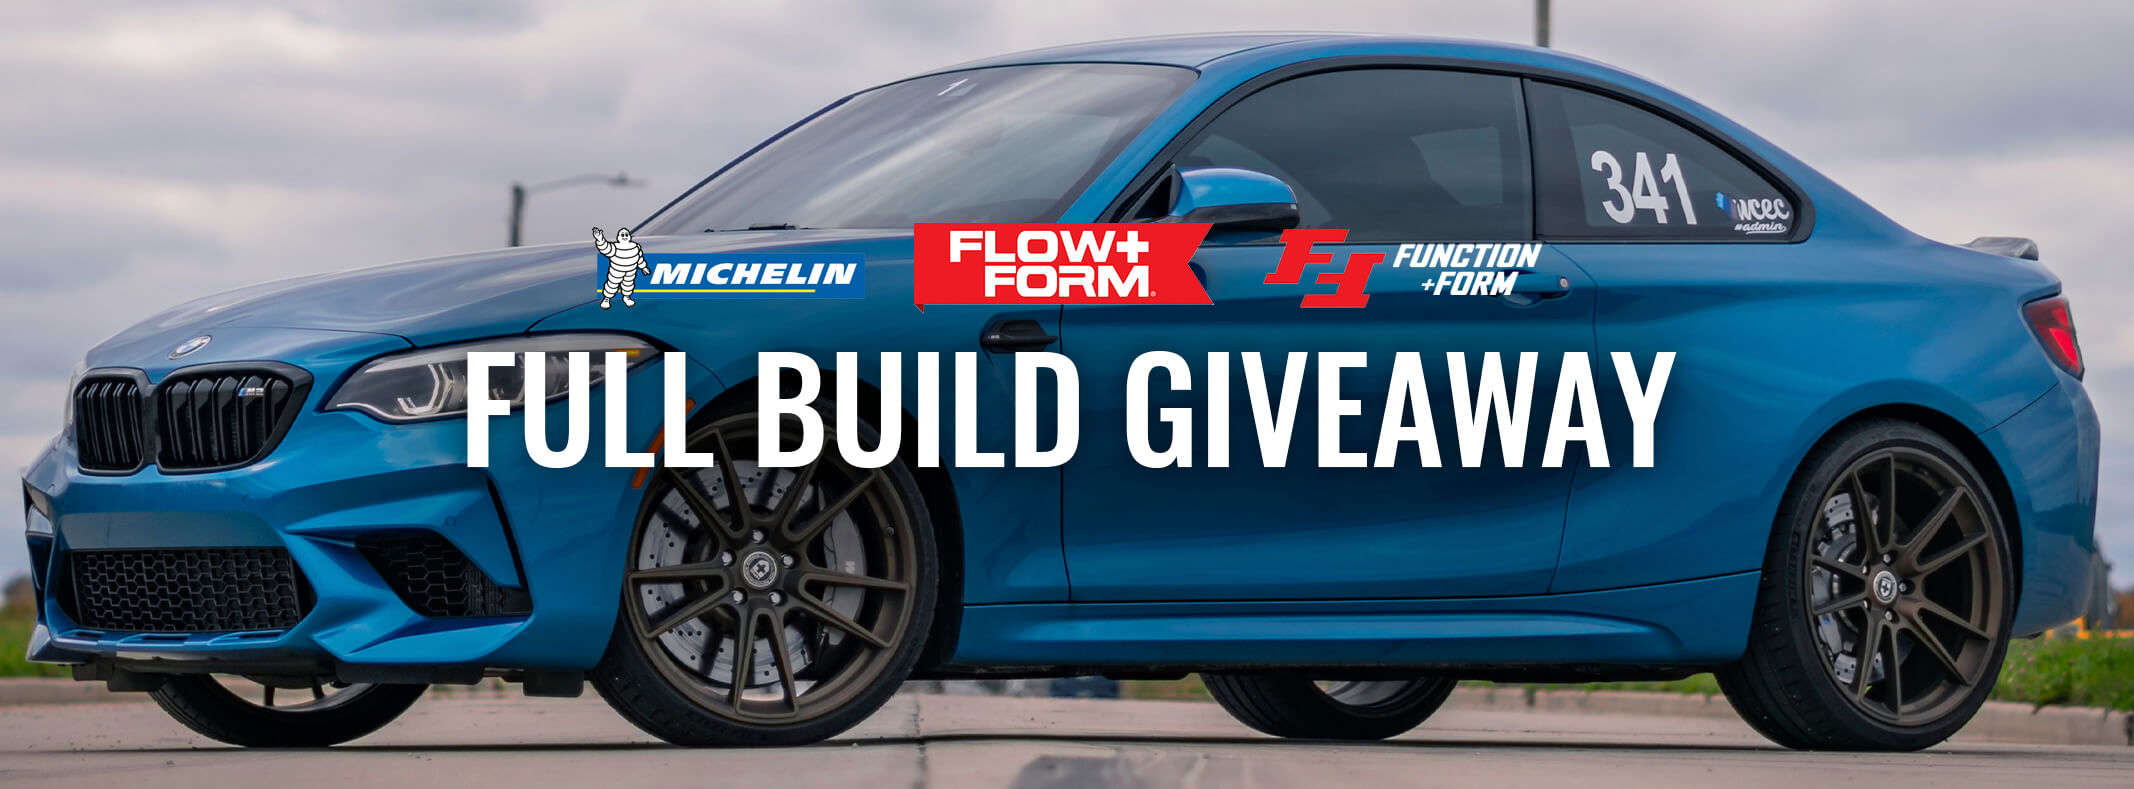 Fitment Industries & Air Lift Suspension Giveaway